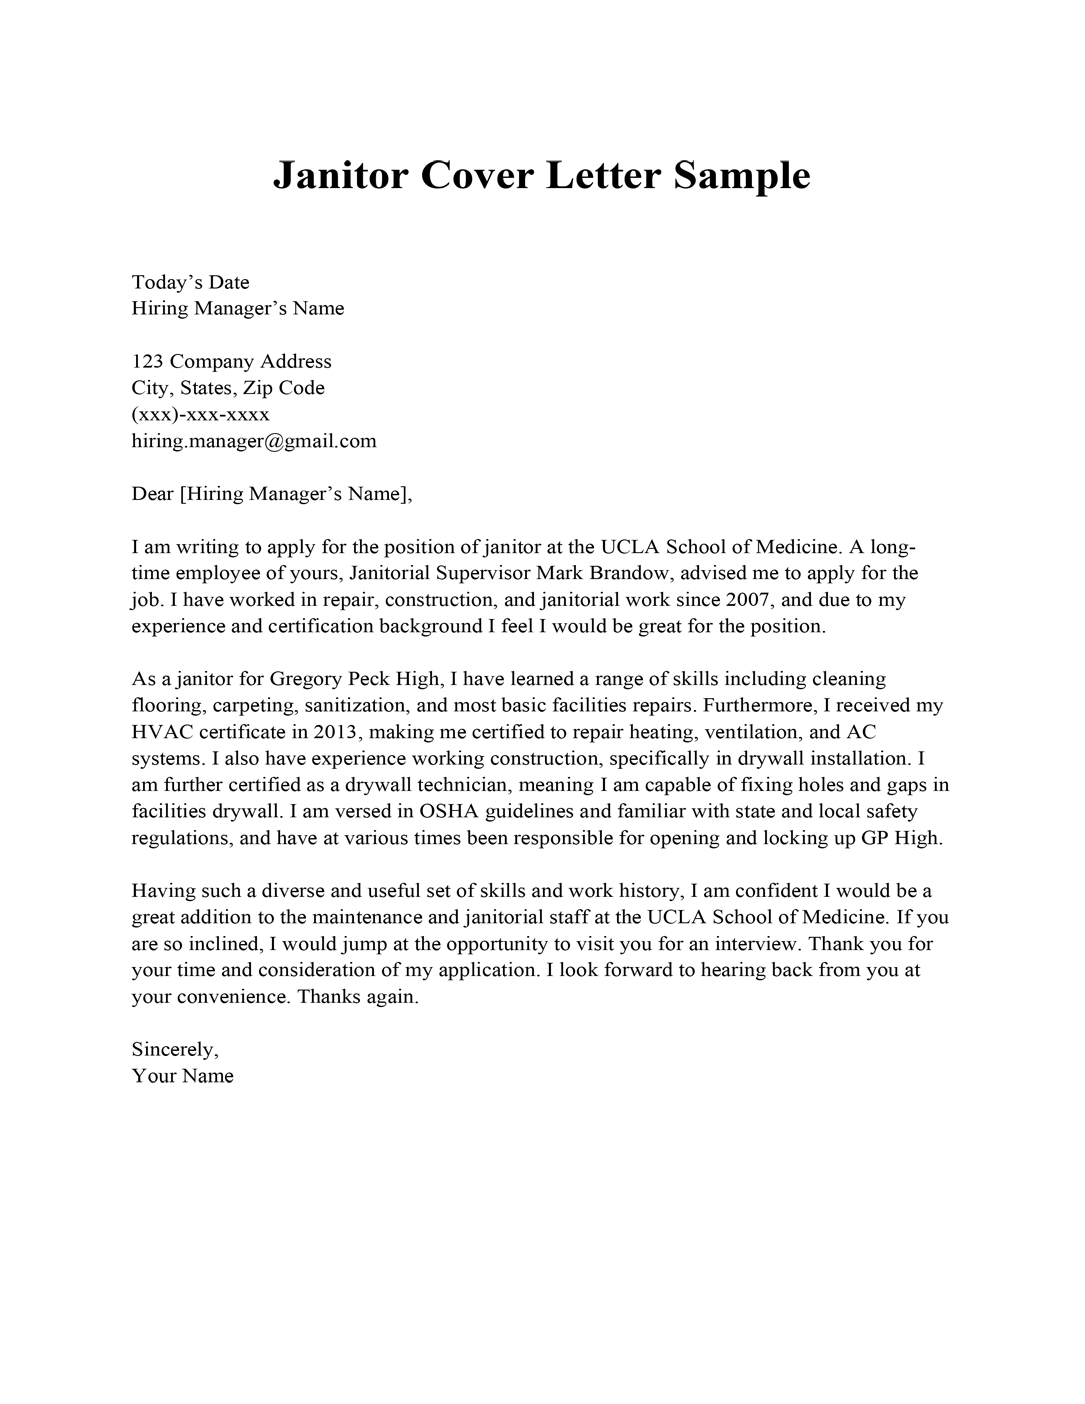 Janitor cover letter sample